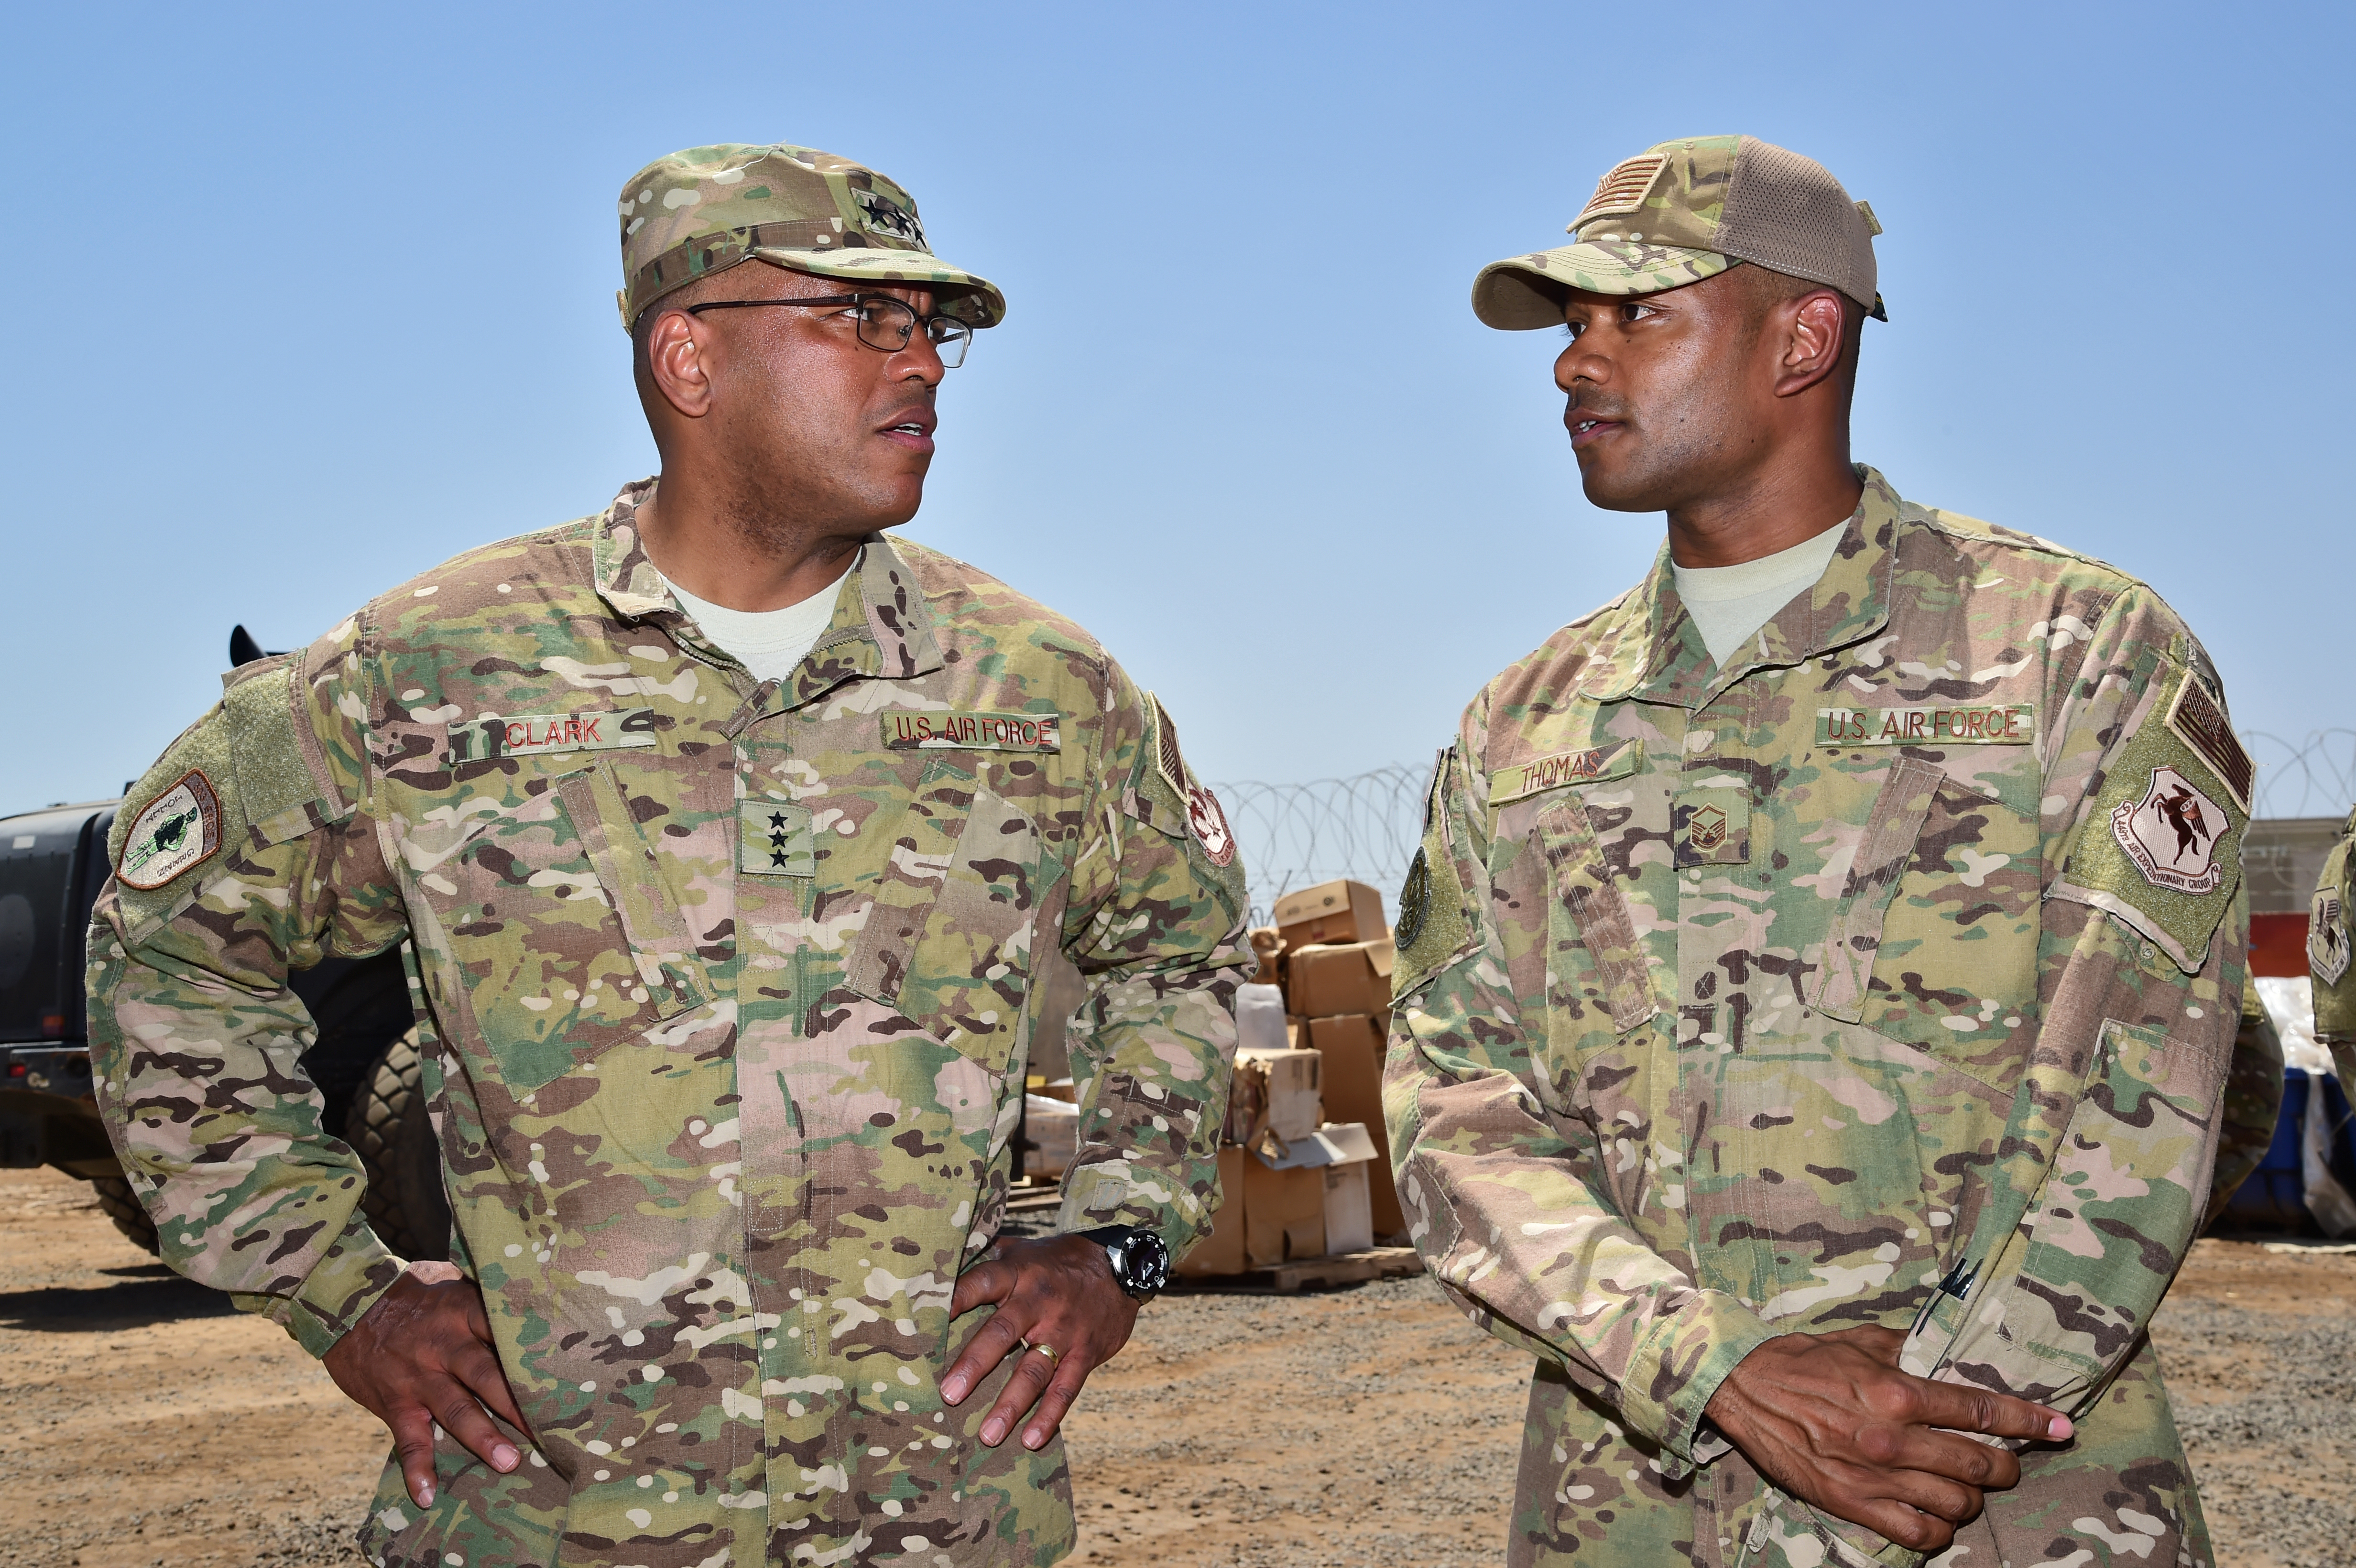 Lt. Gen. Richard Clark, commander of the 3rd Air Force and 17th Expeditionary Air Force, speaks with Master Sgt. Lamar Thomas, chief of supply for the 726th Expeditionary Air Base Squadron during a visit to Camp Lemonnier, Djibouti April 12, 2017. The visit allowed Clark and accompanying leadership to gain a better understanding of the Air Force mission in East Africa, and express their appreciation to the many U.S. Airmen deployed throughout the region. (U.S. Air National Guard photo by Master Sgt. Paul Gorman)